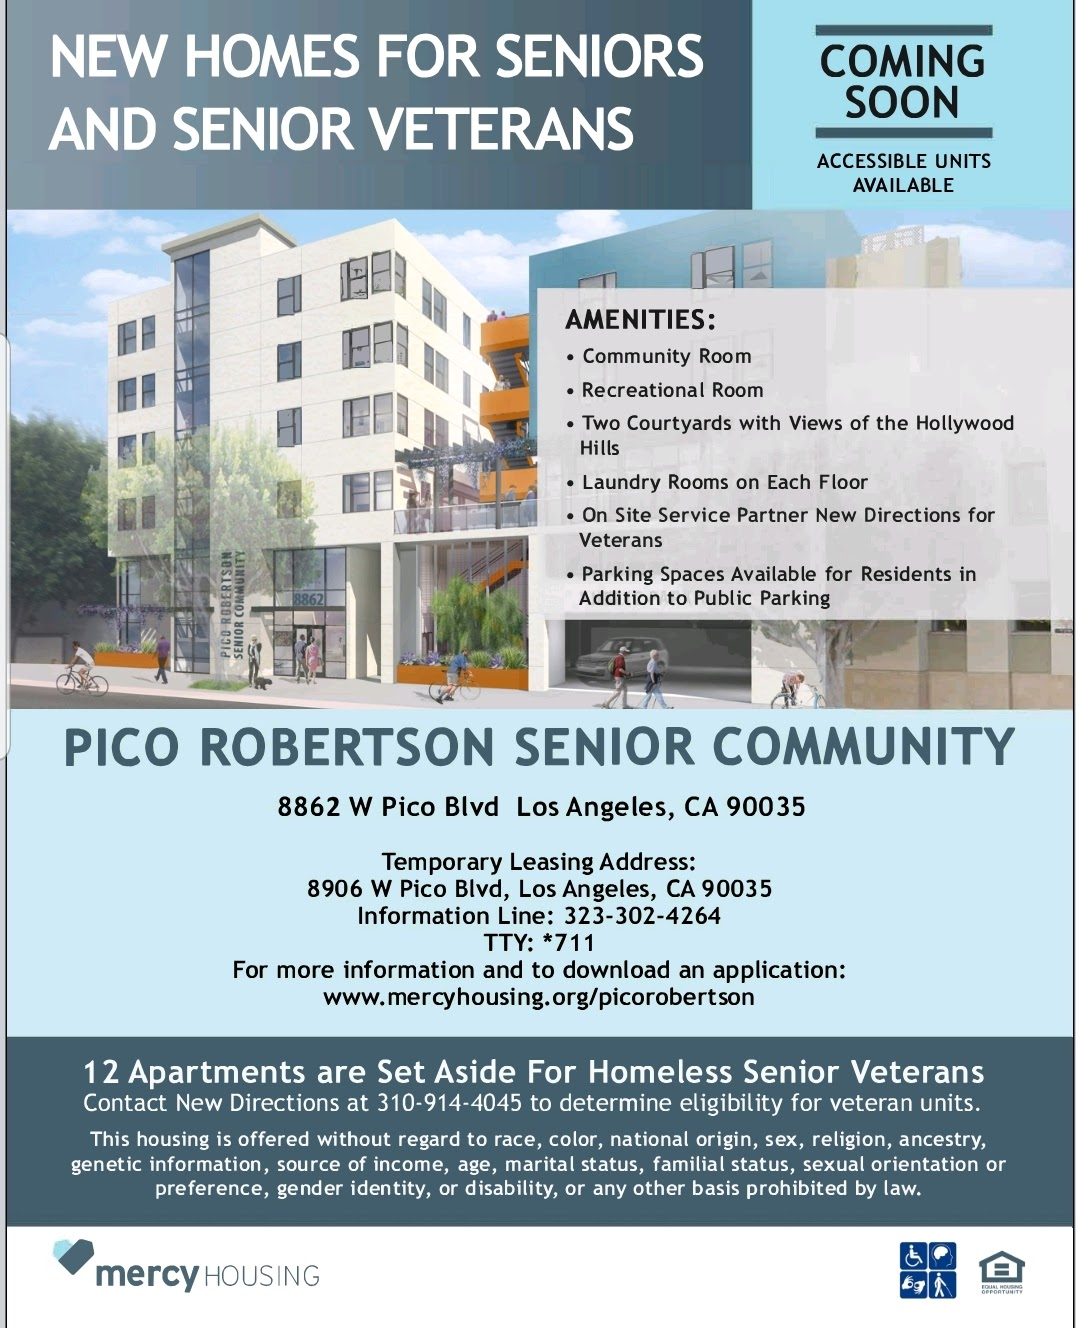 Mercy Housing Pico-Robertson News Homes for Seniors and Senior Veterans Flyer